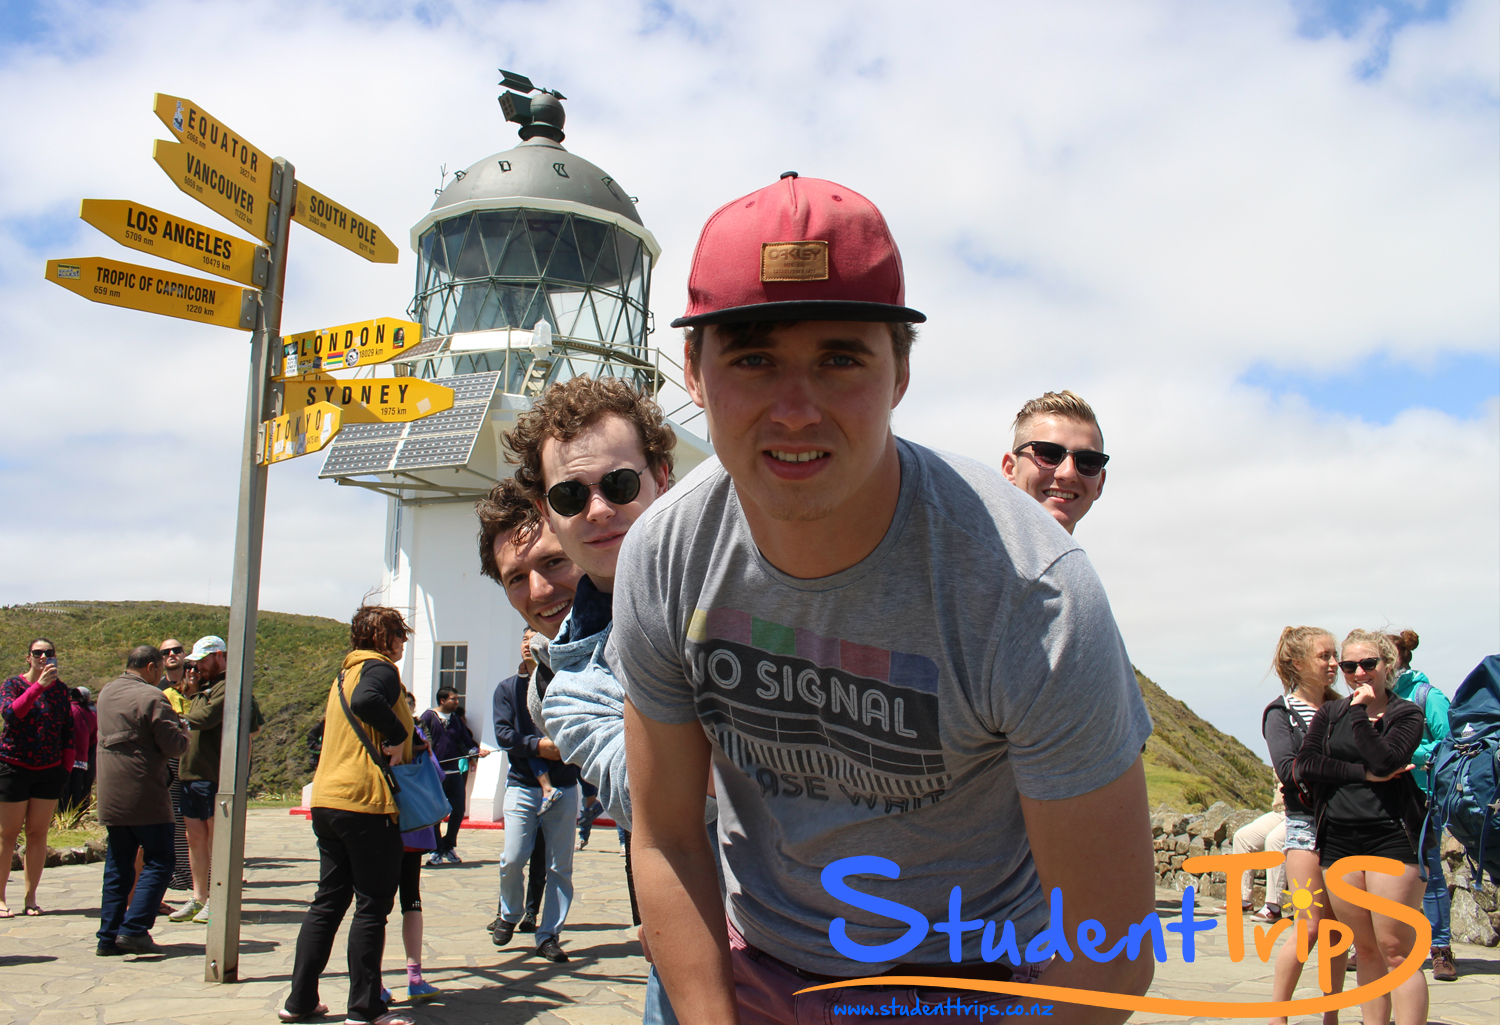 Studenttrips boy band